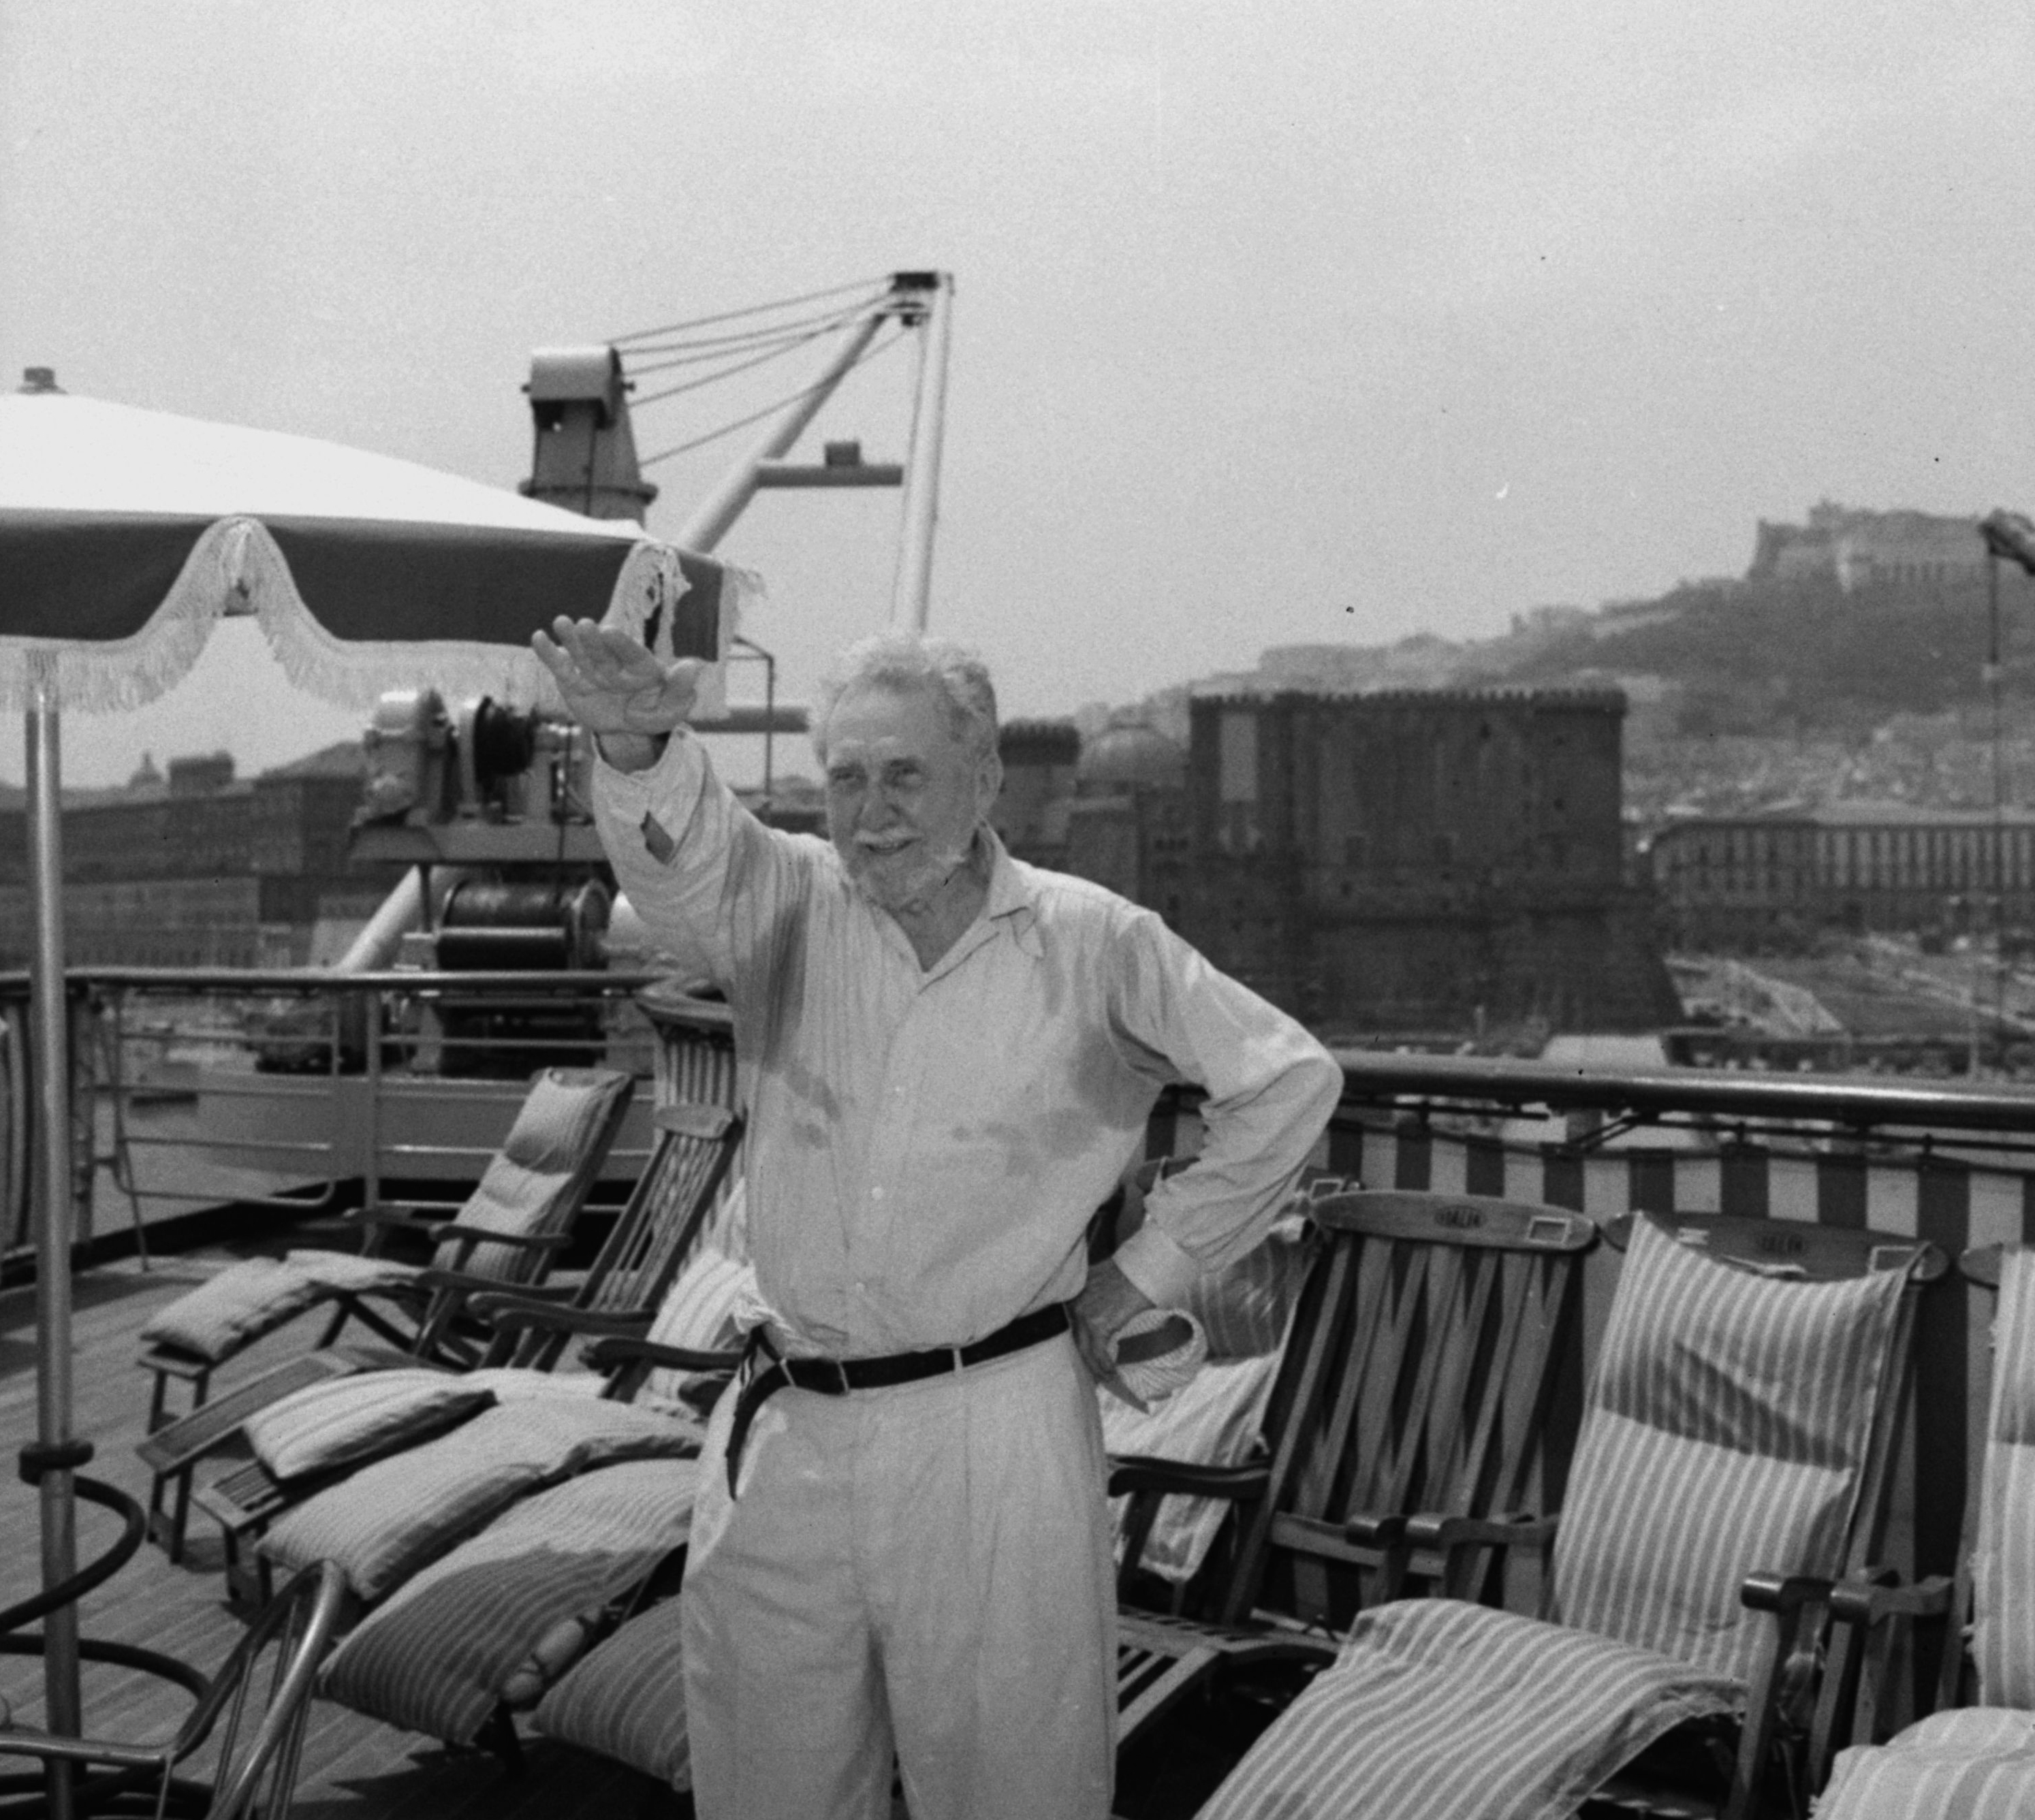 Poet Ezra Pound is pictured saluting in Fascist style on the deck of the liner Christoforo Colombo on arrival in Naples, Italy, . Pound, 72, plans to live in northern Italy with his daughter, Mary, 32, the wife of Prince Boris De Rachewiltz. Pound was accused of treason because of broadcasts he made from Italy during World War II. He was returned to the U.S. in 1945, judged insane, and confined to a mental institution in Washington, D.C. until April of this year. July 9, 1958